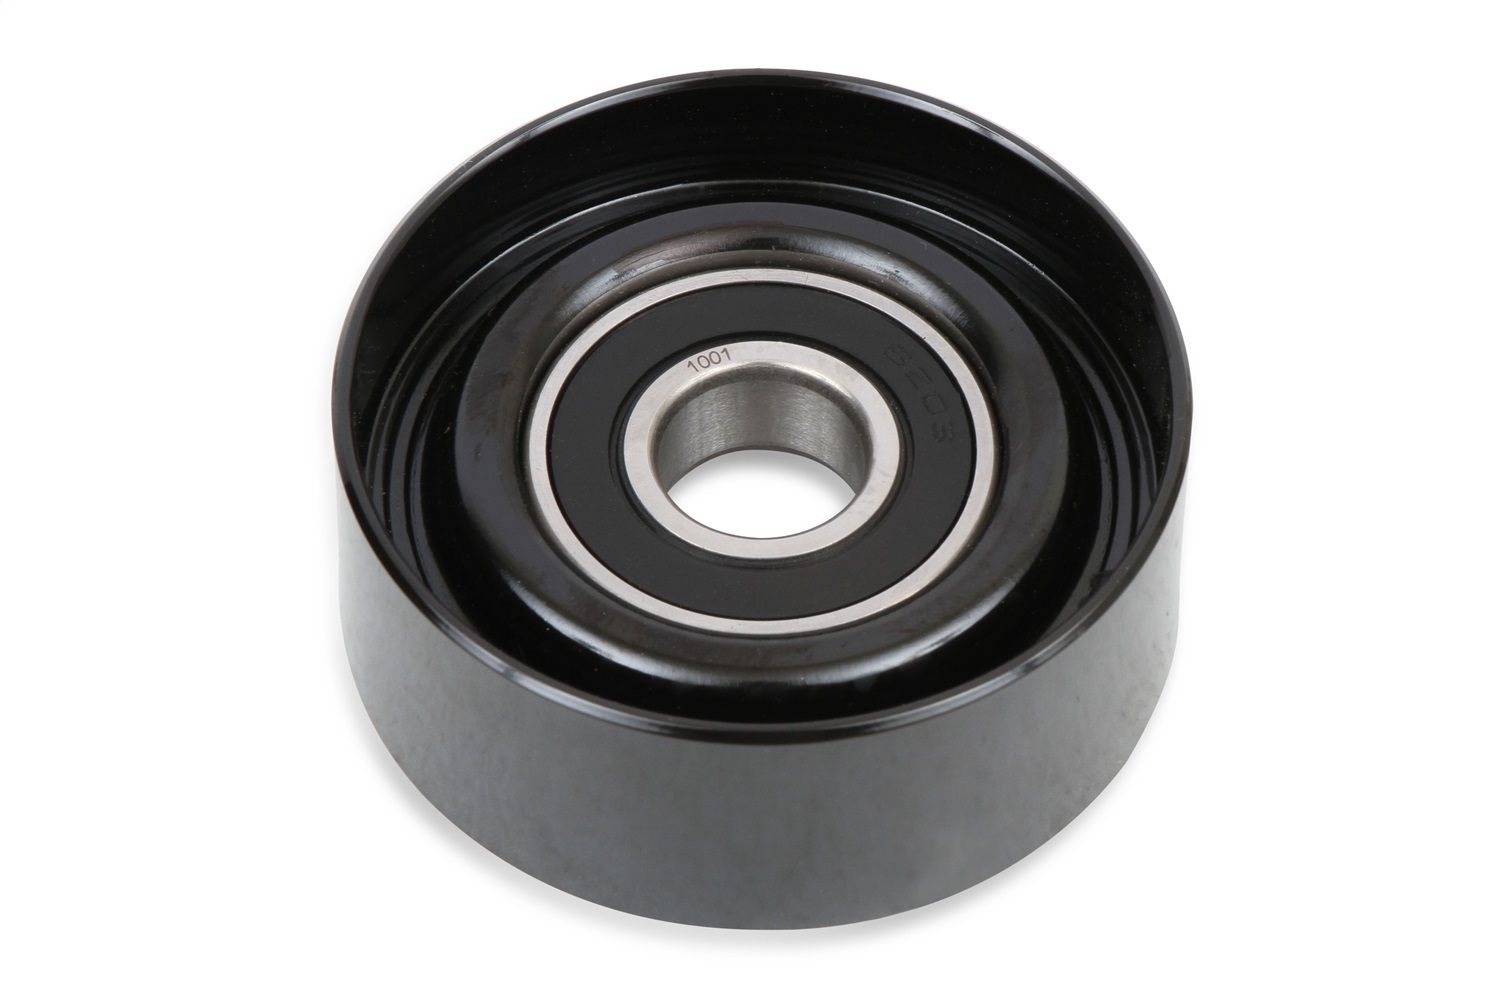 Holley Performance 97-249 Idler Pulley